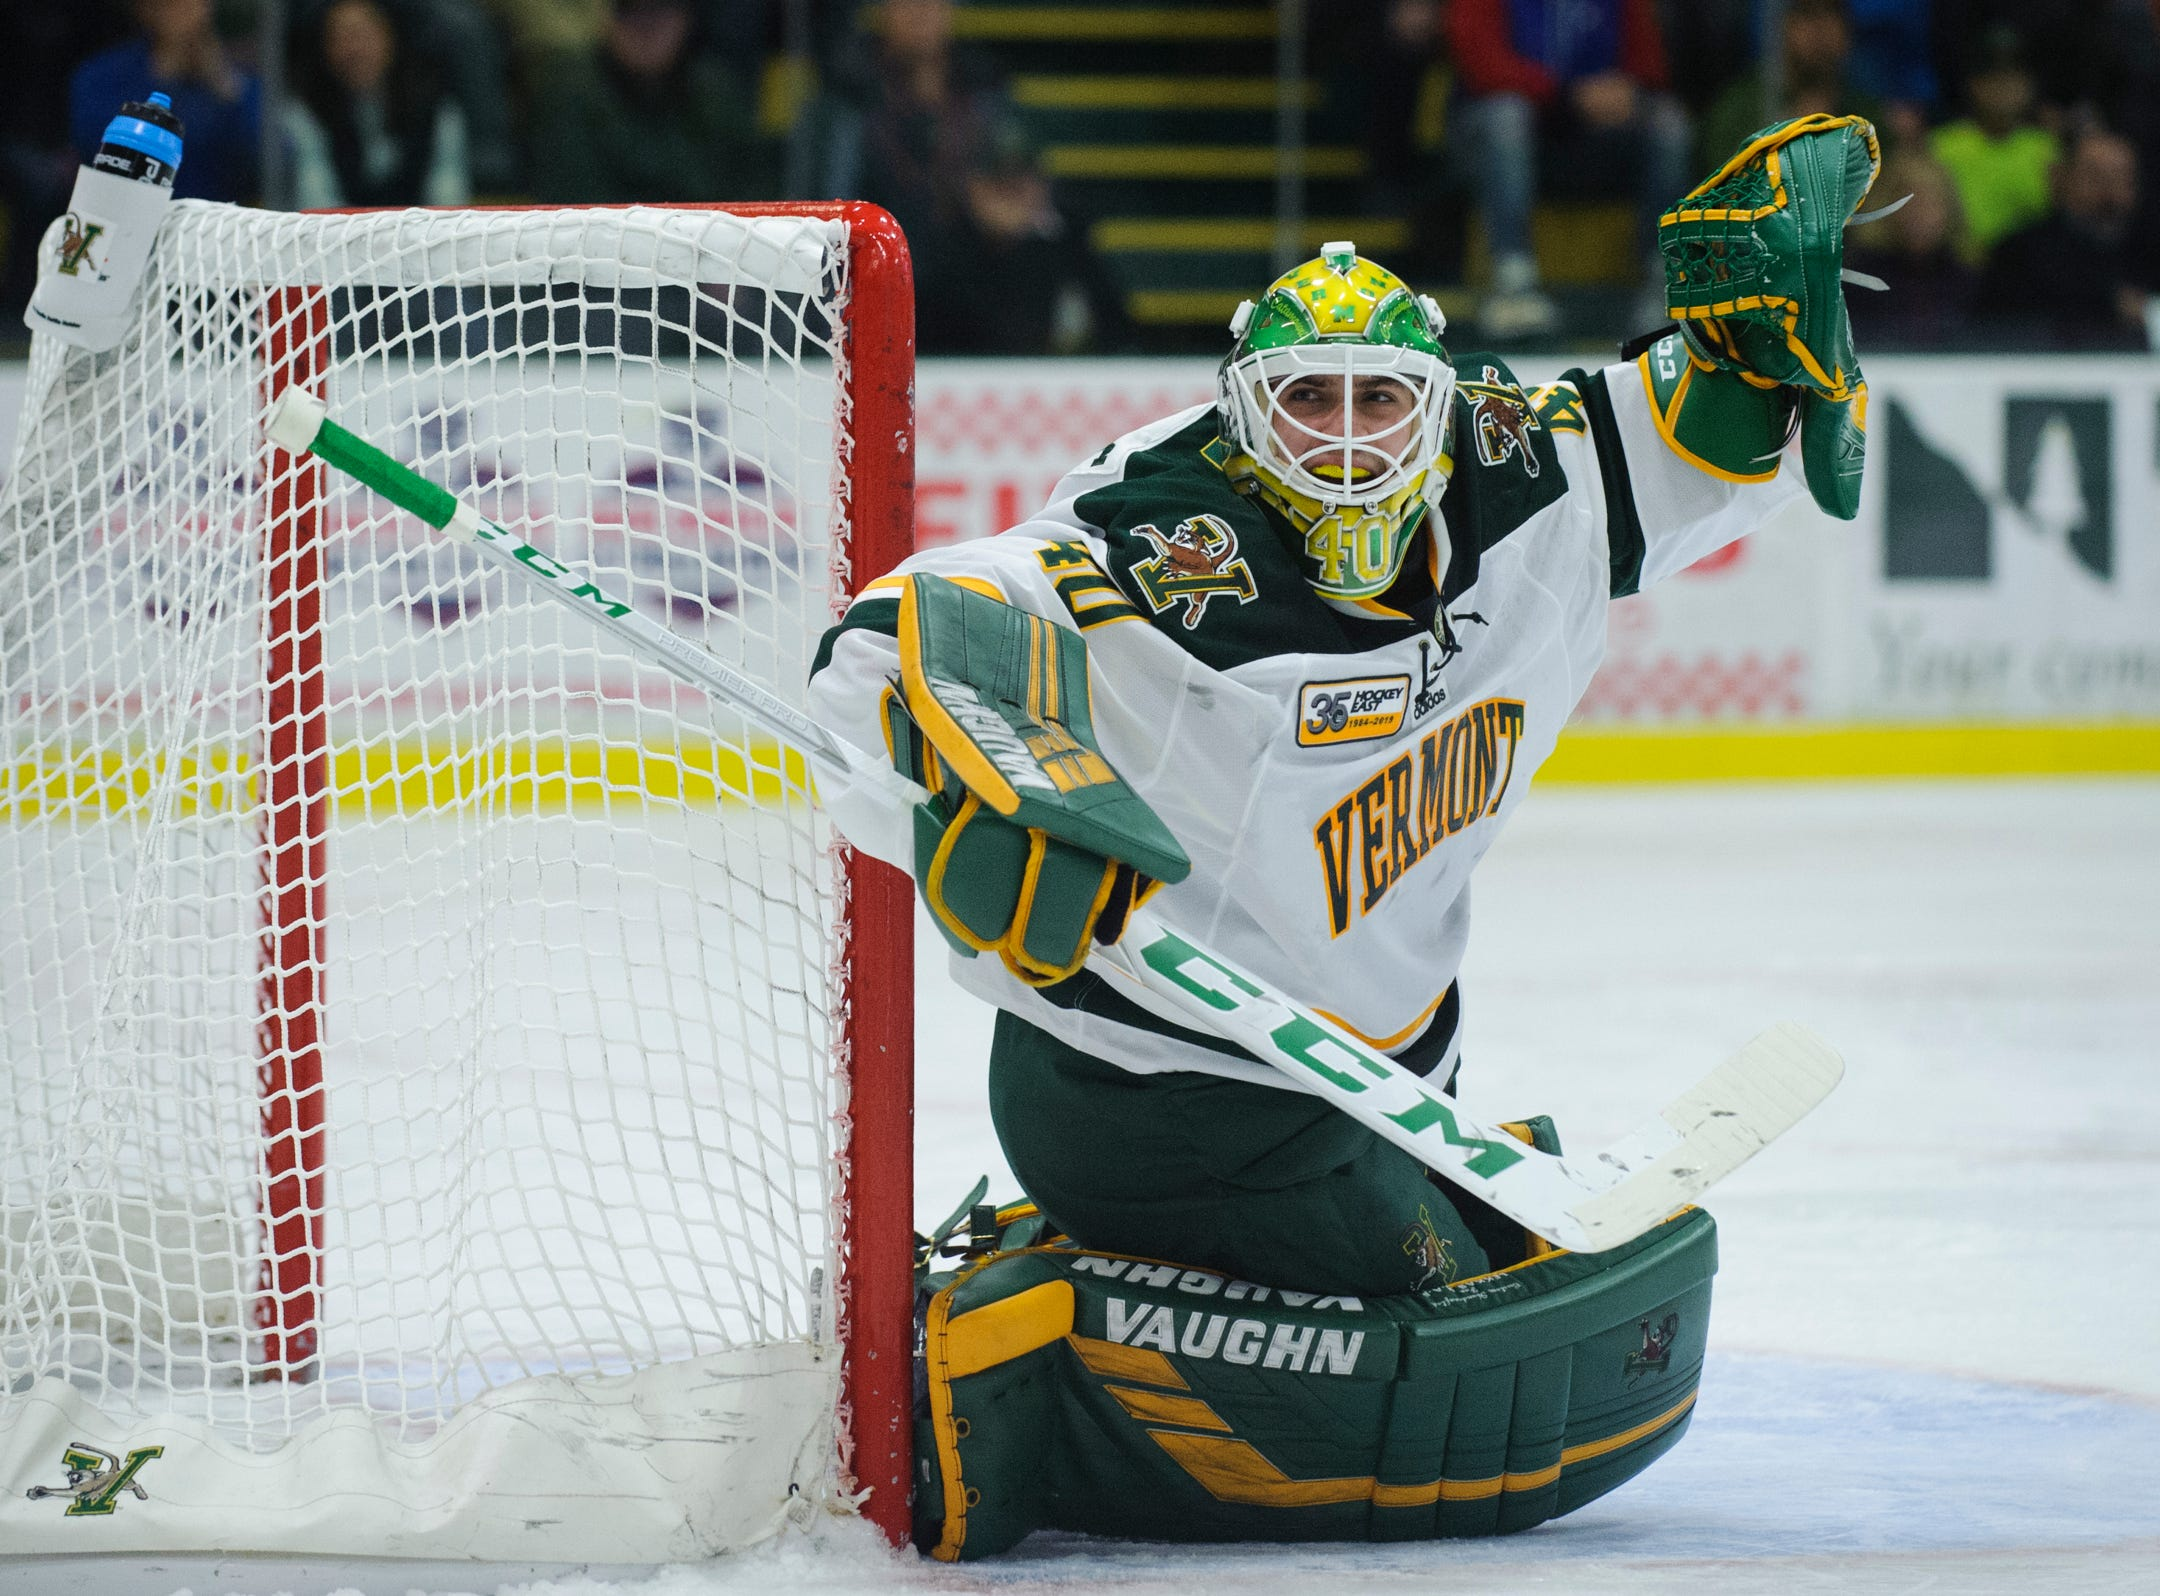 Vermont goalie Stefanos Lekkas (40) in action during the men's hockey game between the Mine Black Bears and the Vermont Catamounts at Gutterson Field House on Friday night November 30, 2018 in Burlington.